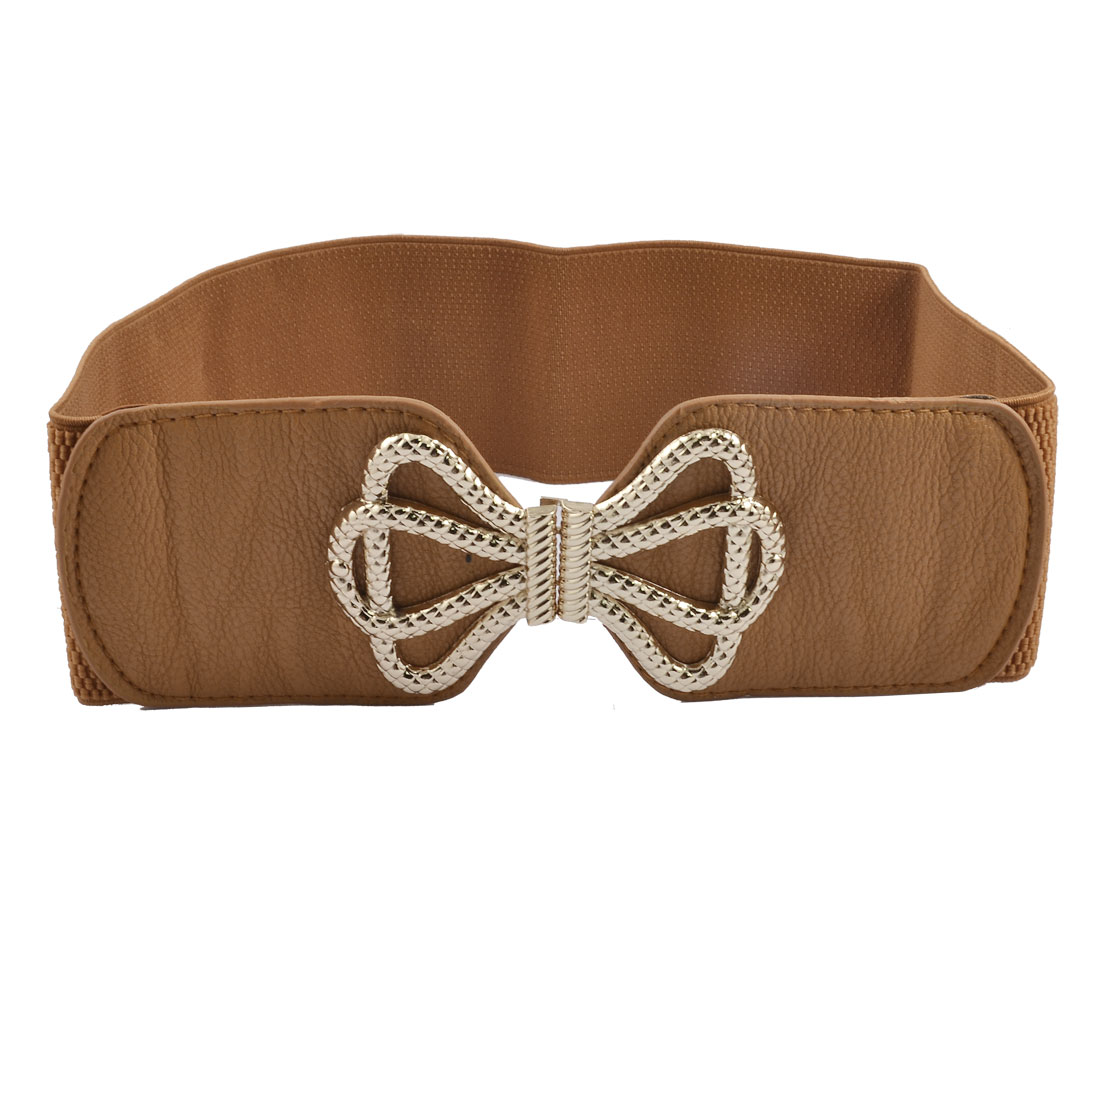 Woman Bowknot Buckle Brown 7.5cm Wide Elastic Cinch Belt